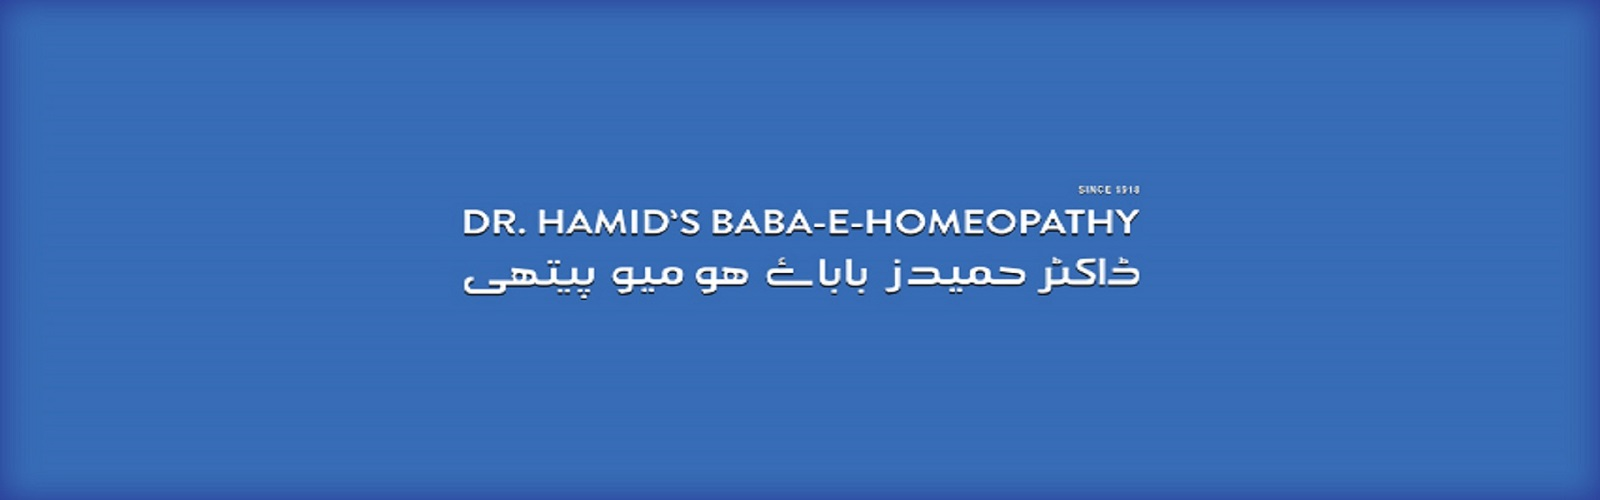 Dr hamid national homoeo clinic front %28dha%29